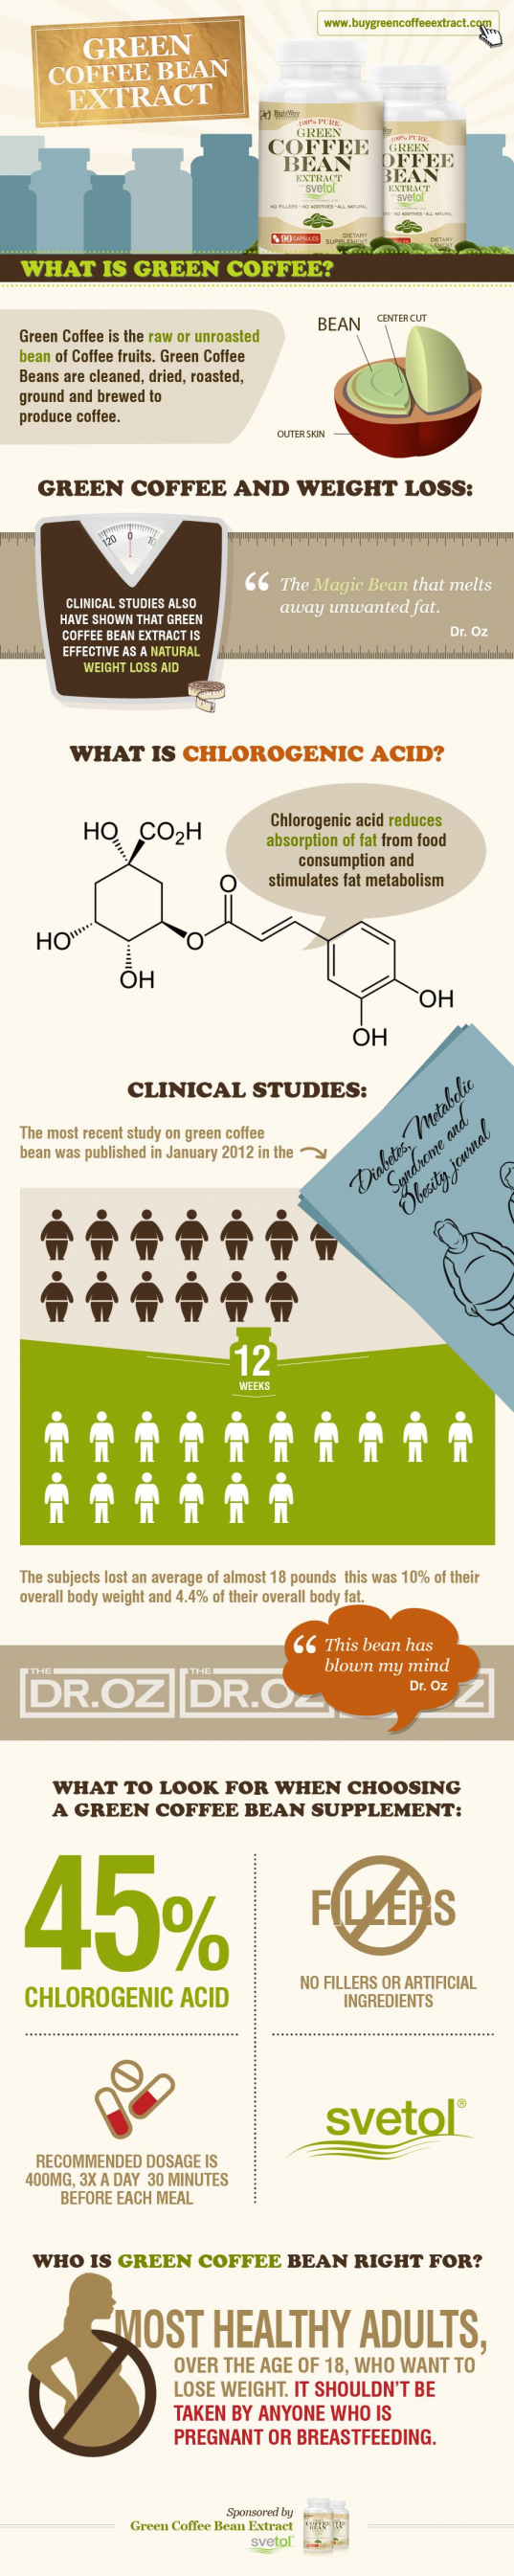 Green Coffee Bean Extract Benefits supposed to make me